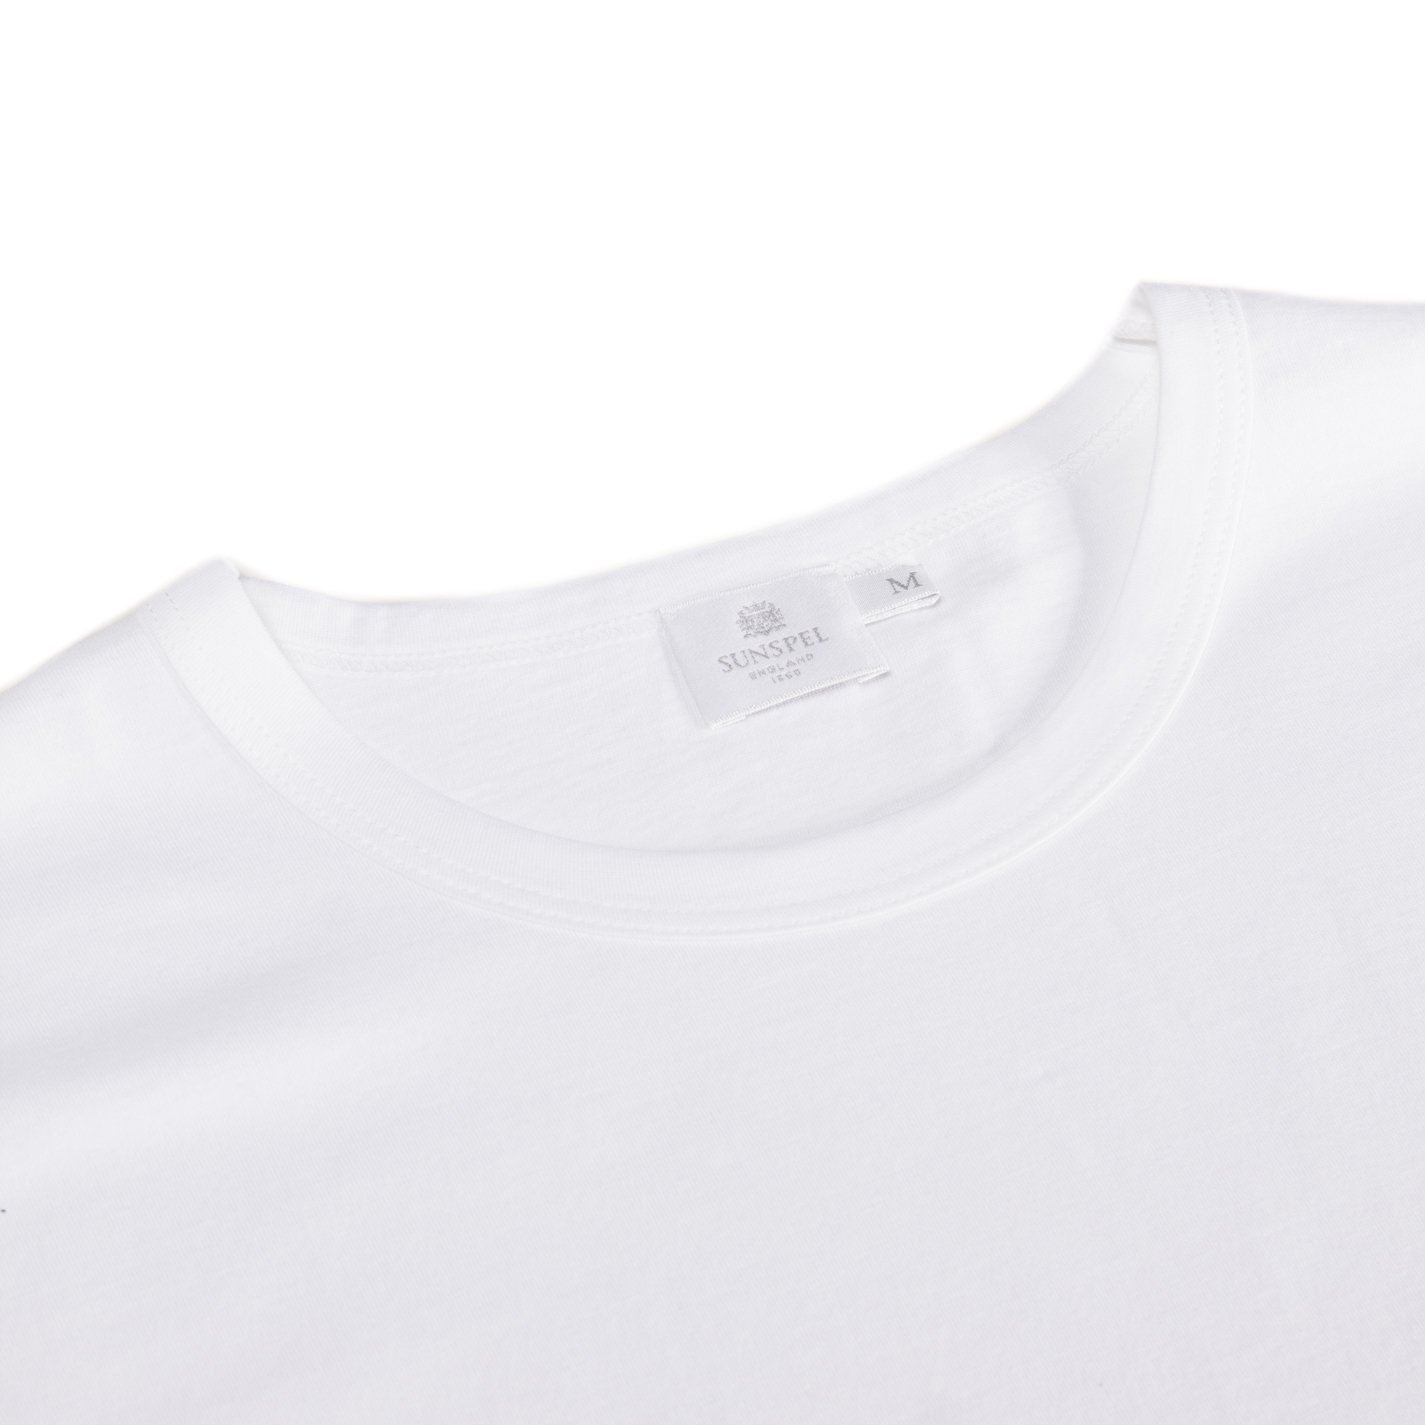 Sunspel - Camiseta - para hombre Blanco blanco large: Amazon.es ...